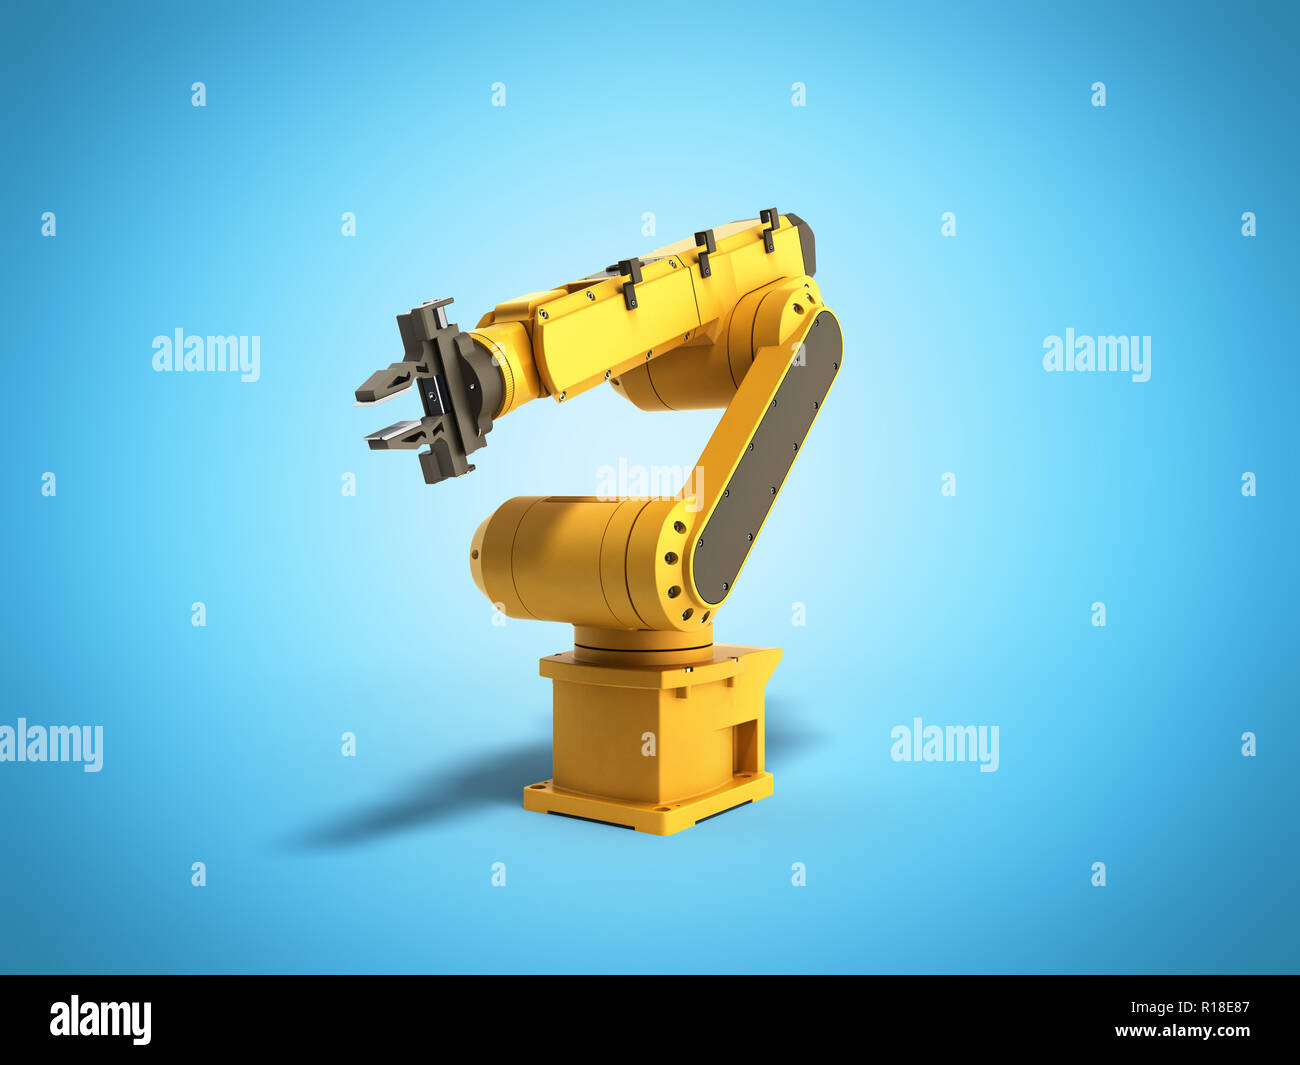 Industrial robot on blue background 3D rendering - Stock Image